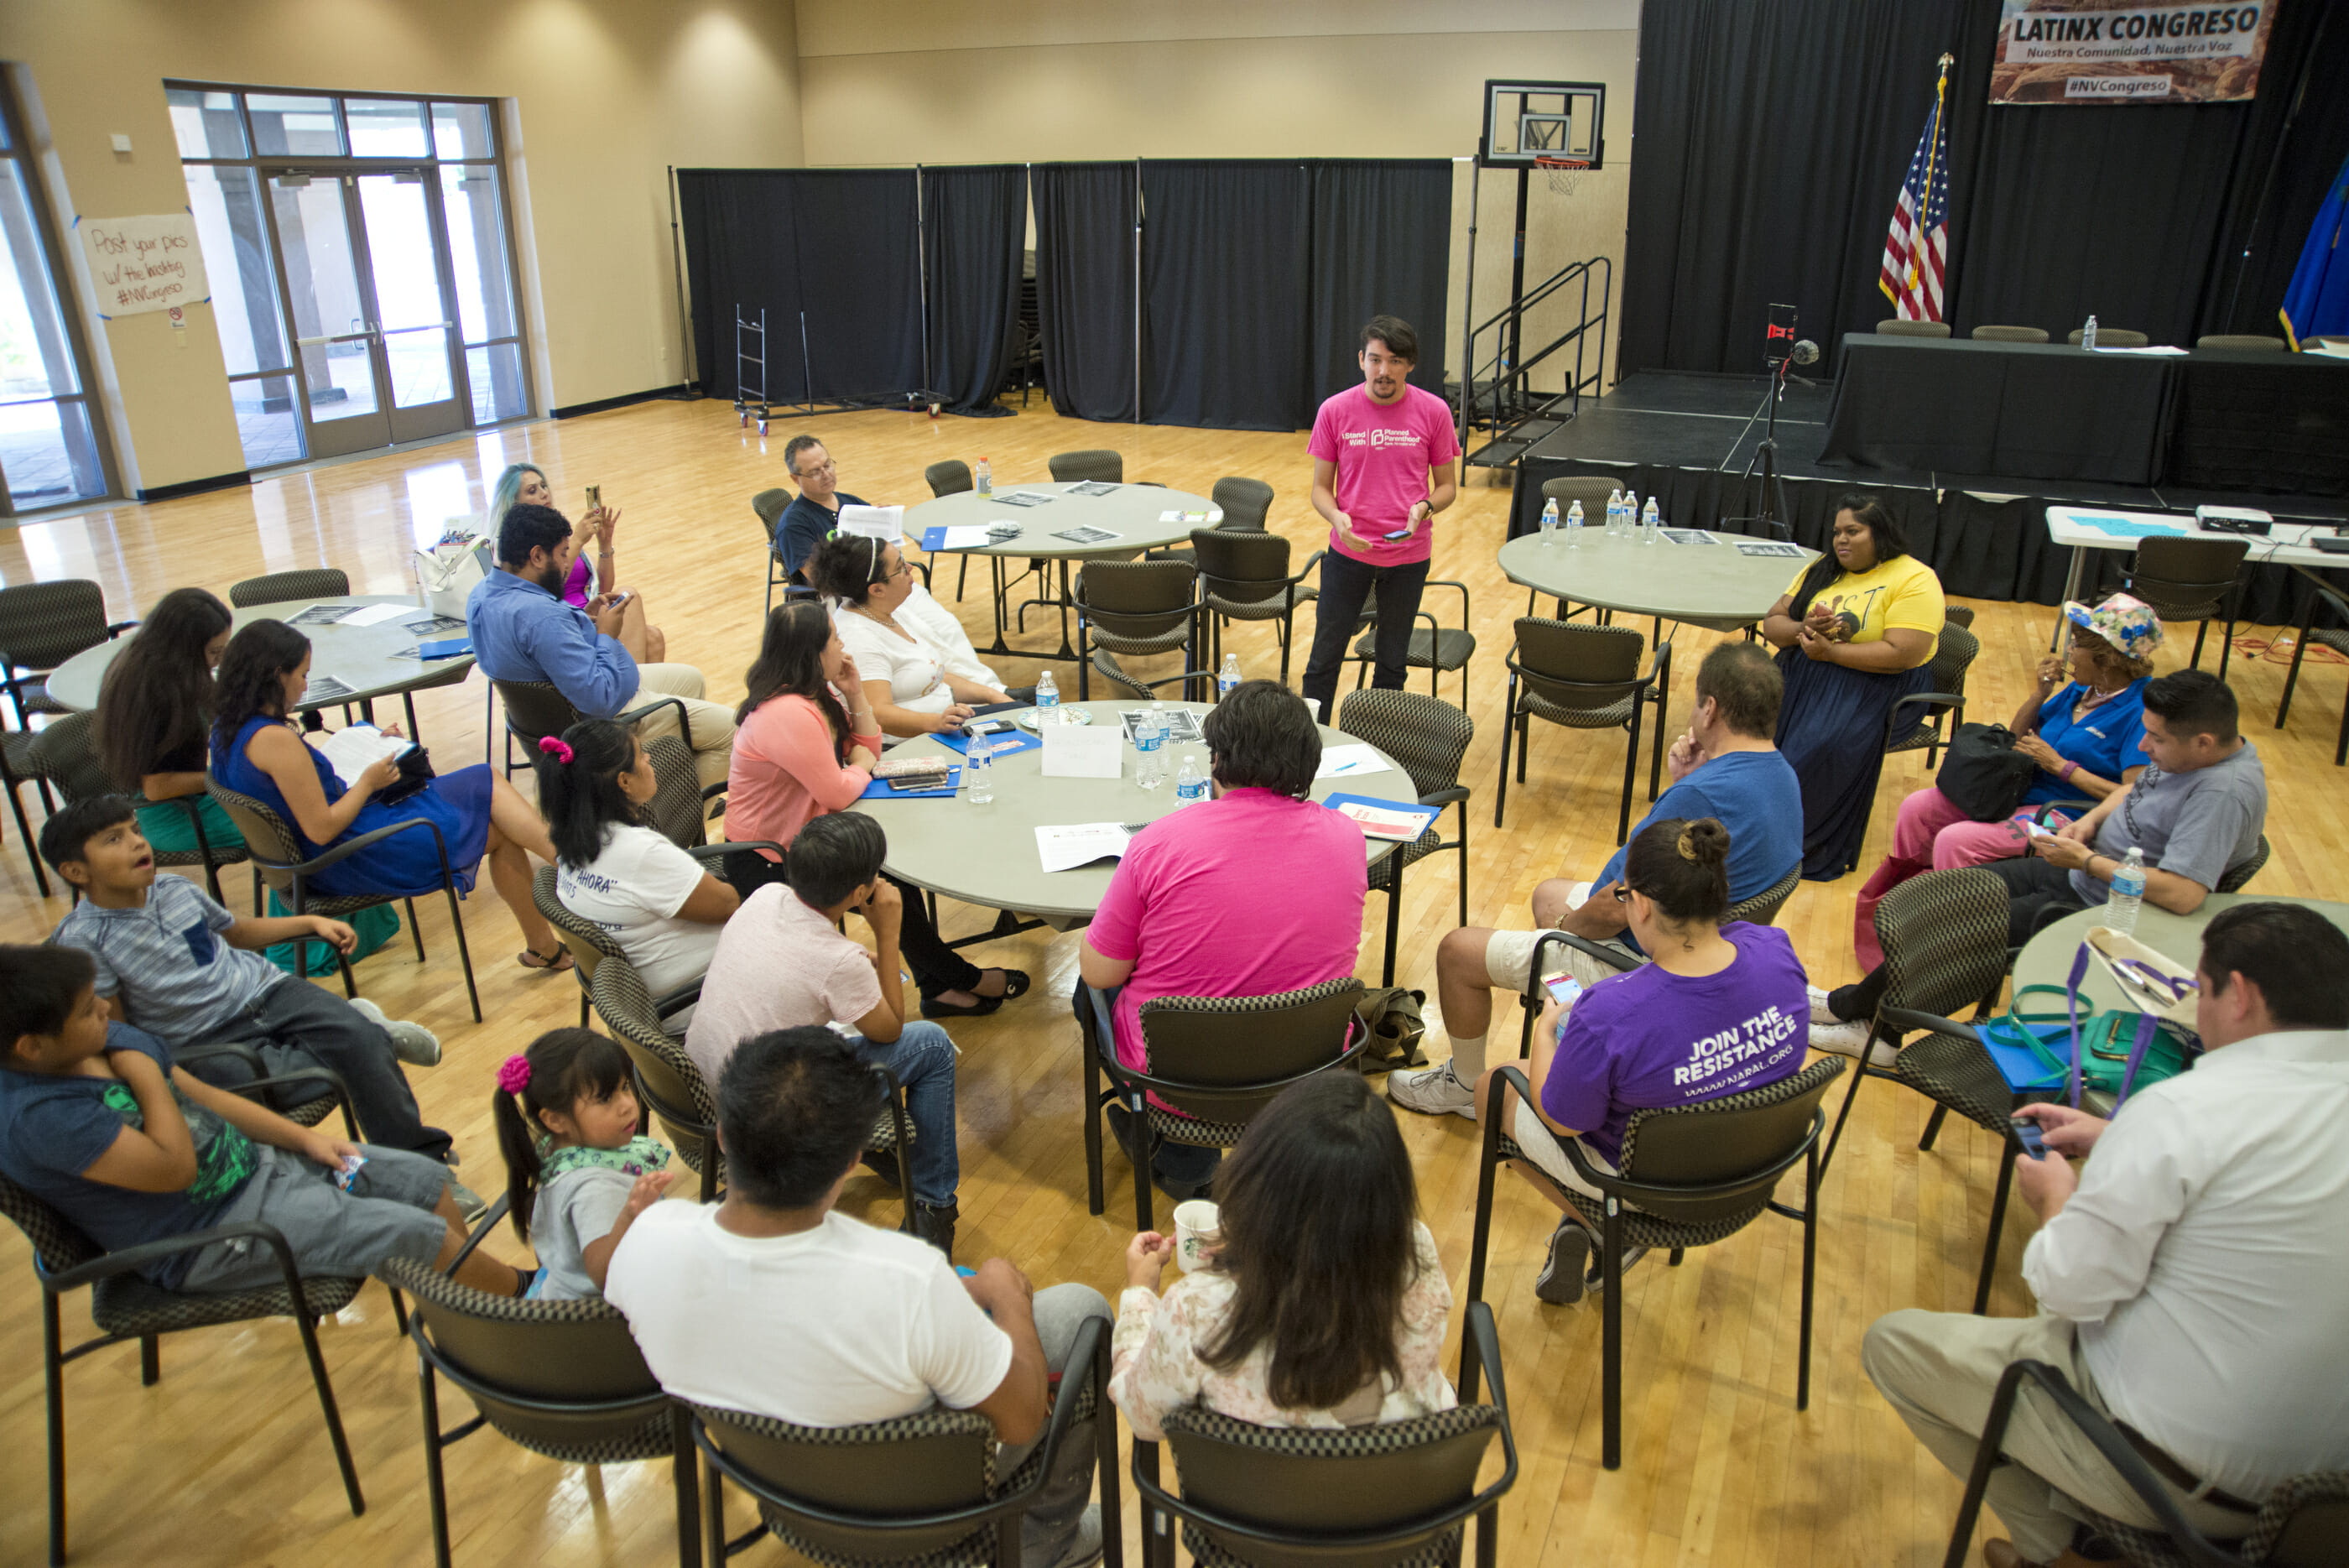 A group in chairs in the East Las Vegas Community Center